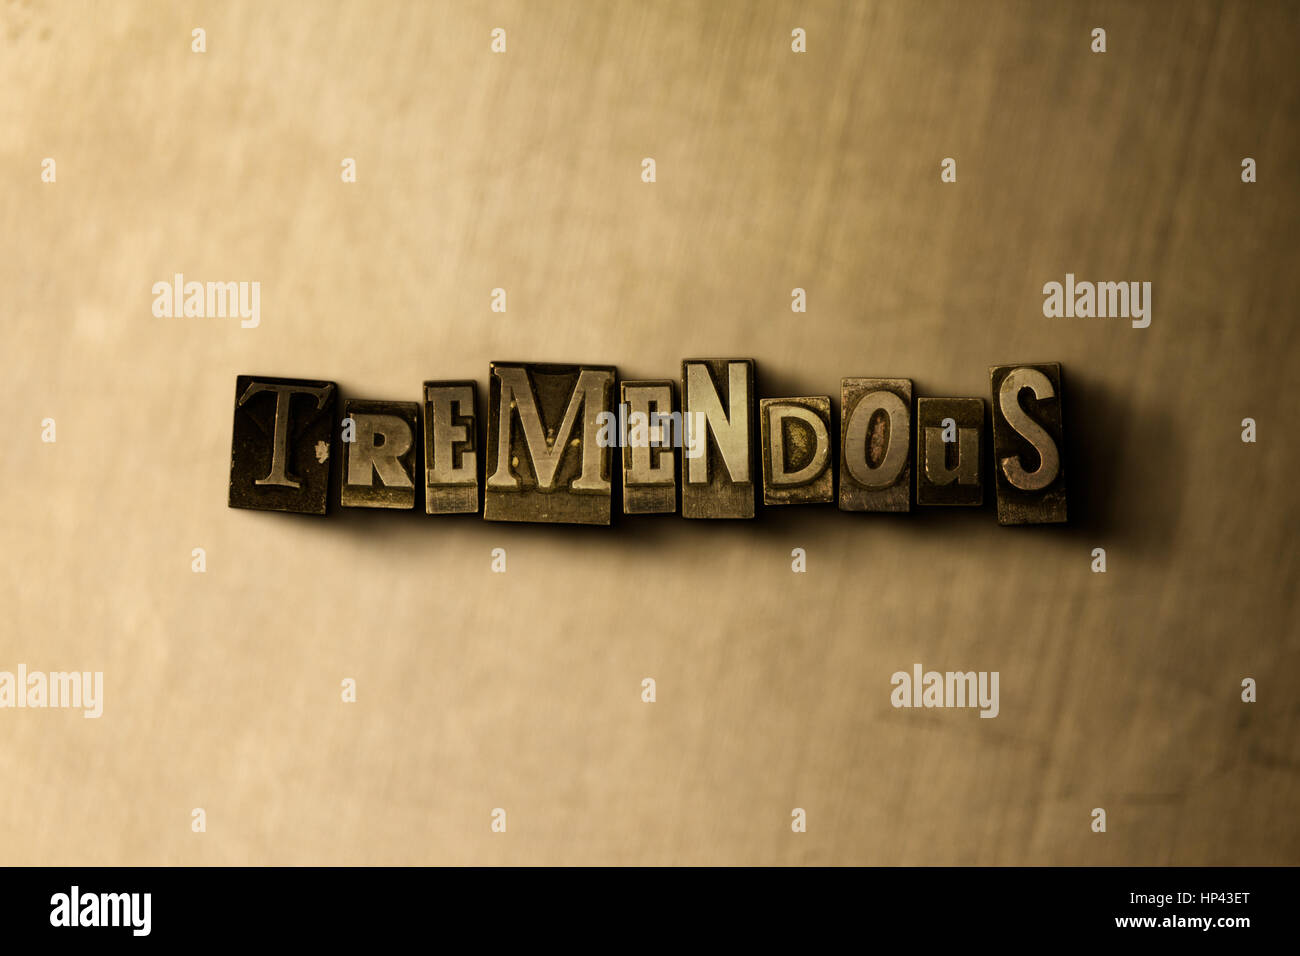 TREMENDOUS - close-up of grungy vintage typeset word on metal backdrop. Royalty free stock illustration.  Can be Stock Photo